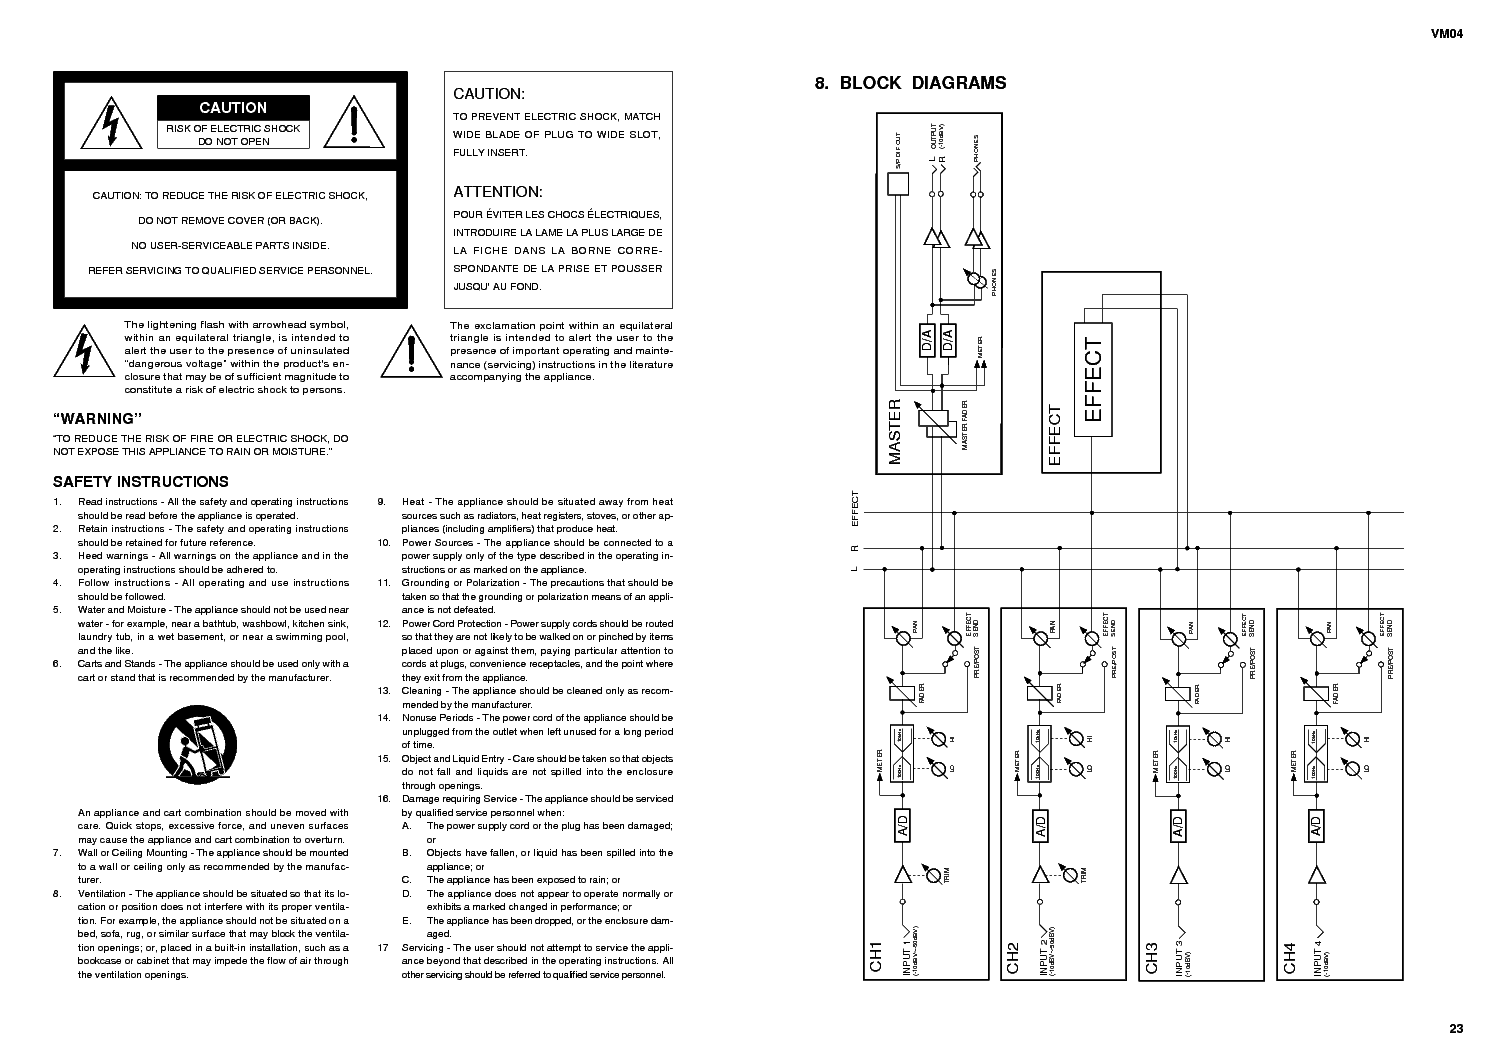 FOSTEX VM04 Service Manual download, schematics, eeprom